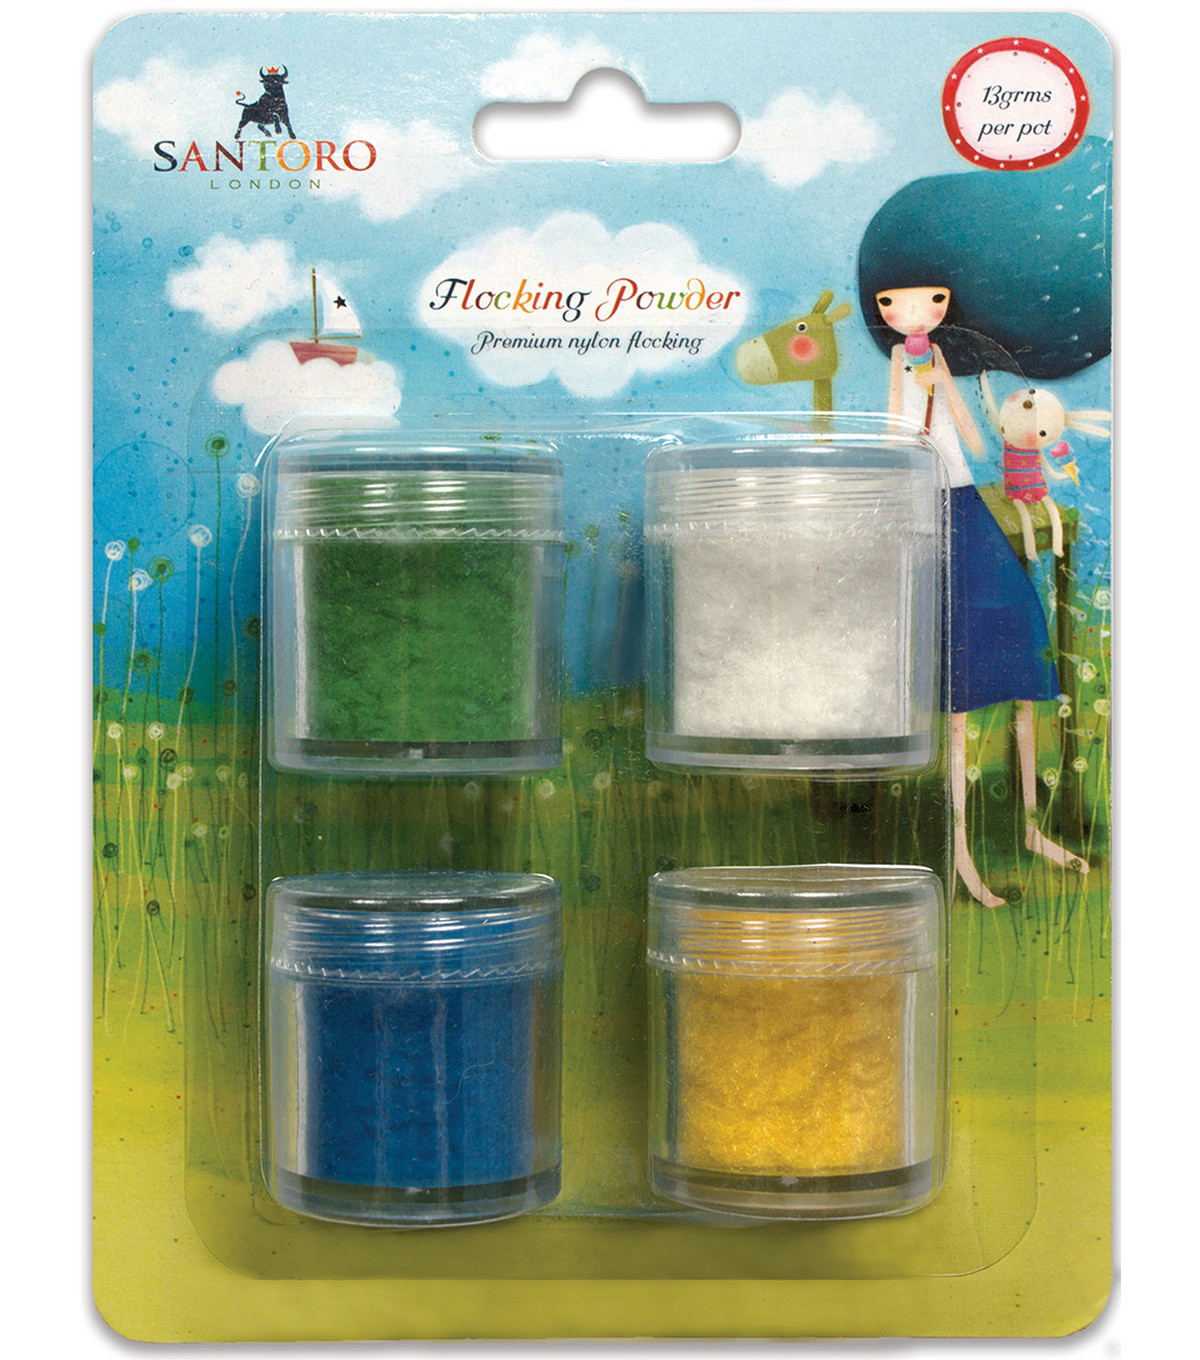 Santoro Kori Kumi II Premium Nylon Flocking Powder Pack